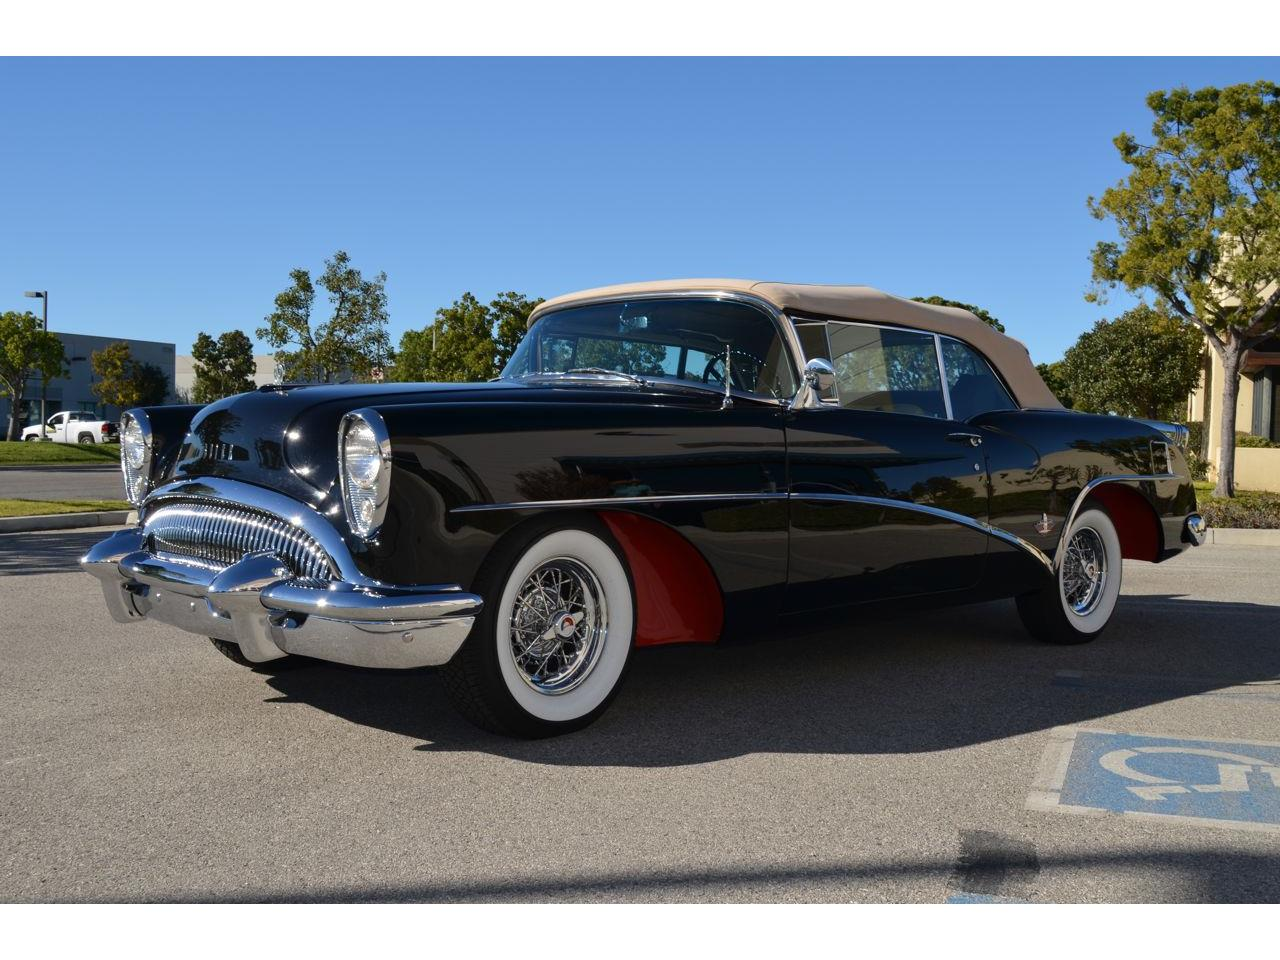 Large Picture of Classic 1954 Buick Skylark located in California - $119,000.00 Offered by Spoke Motors - LT5D